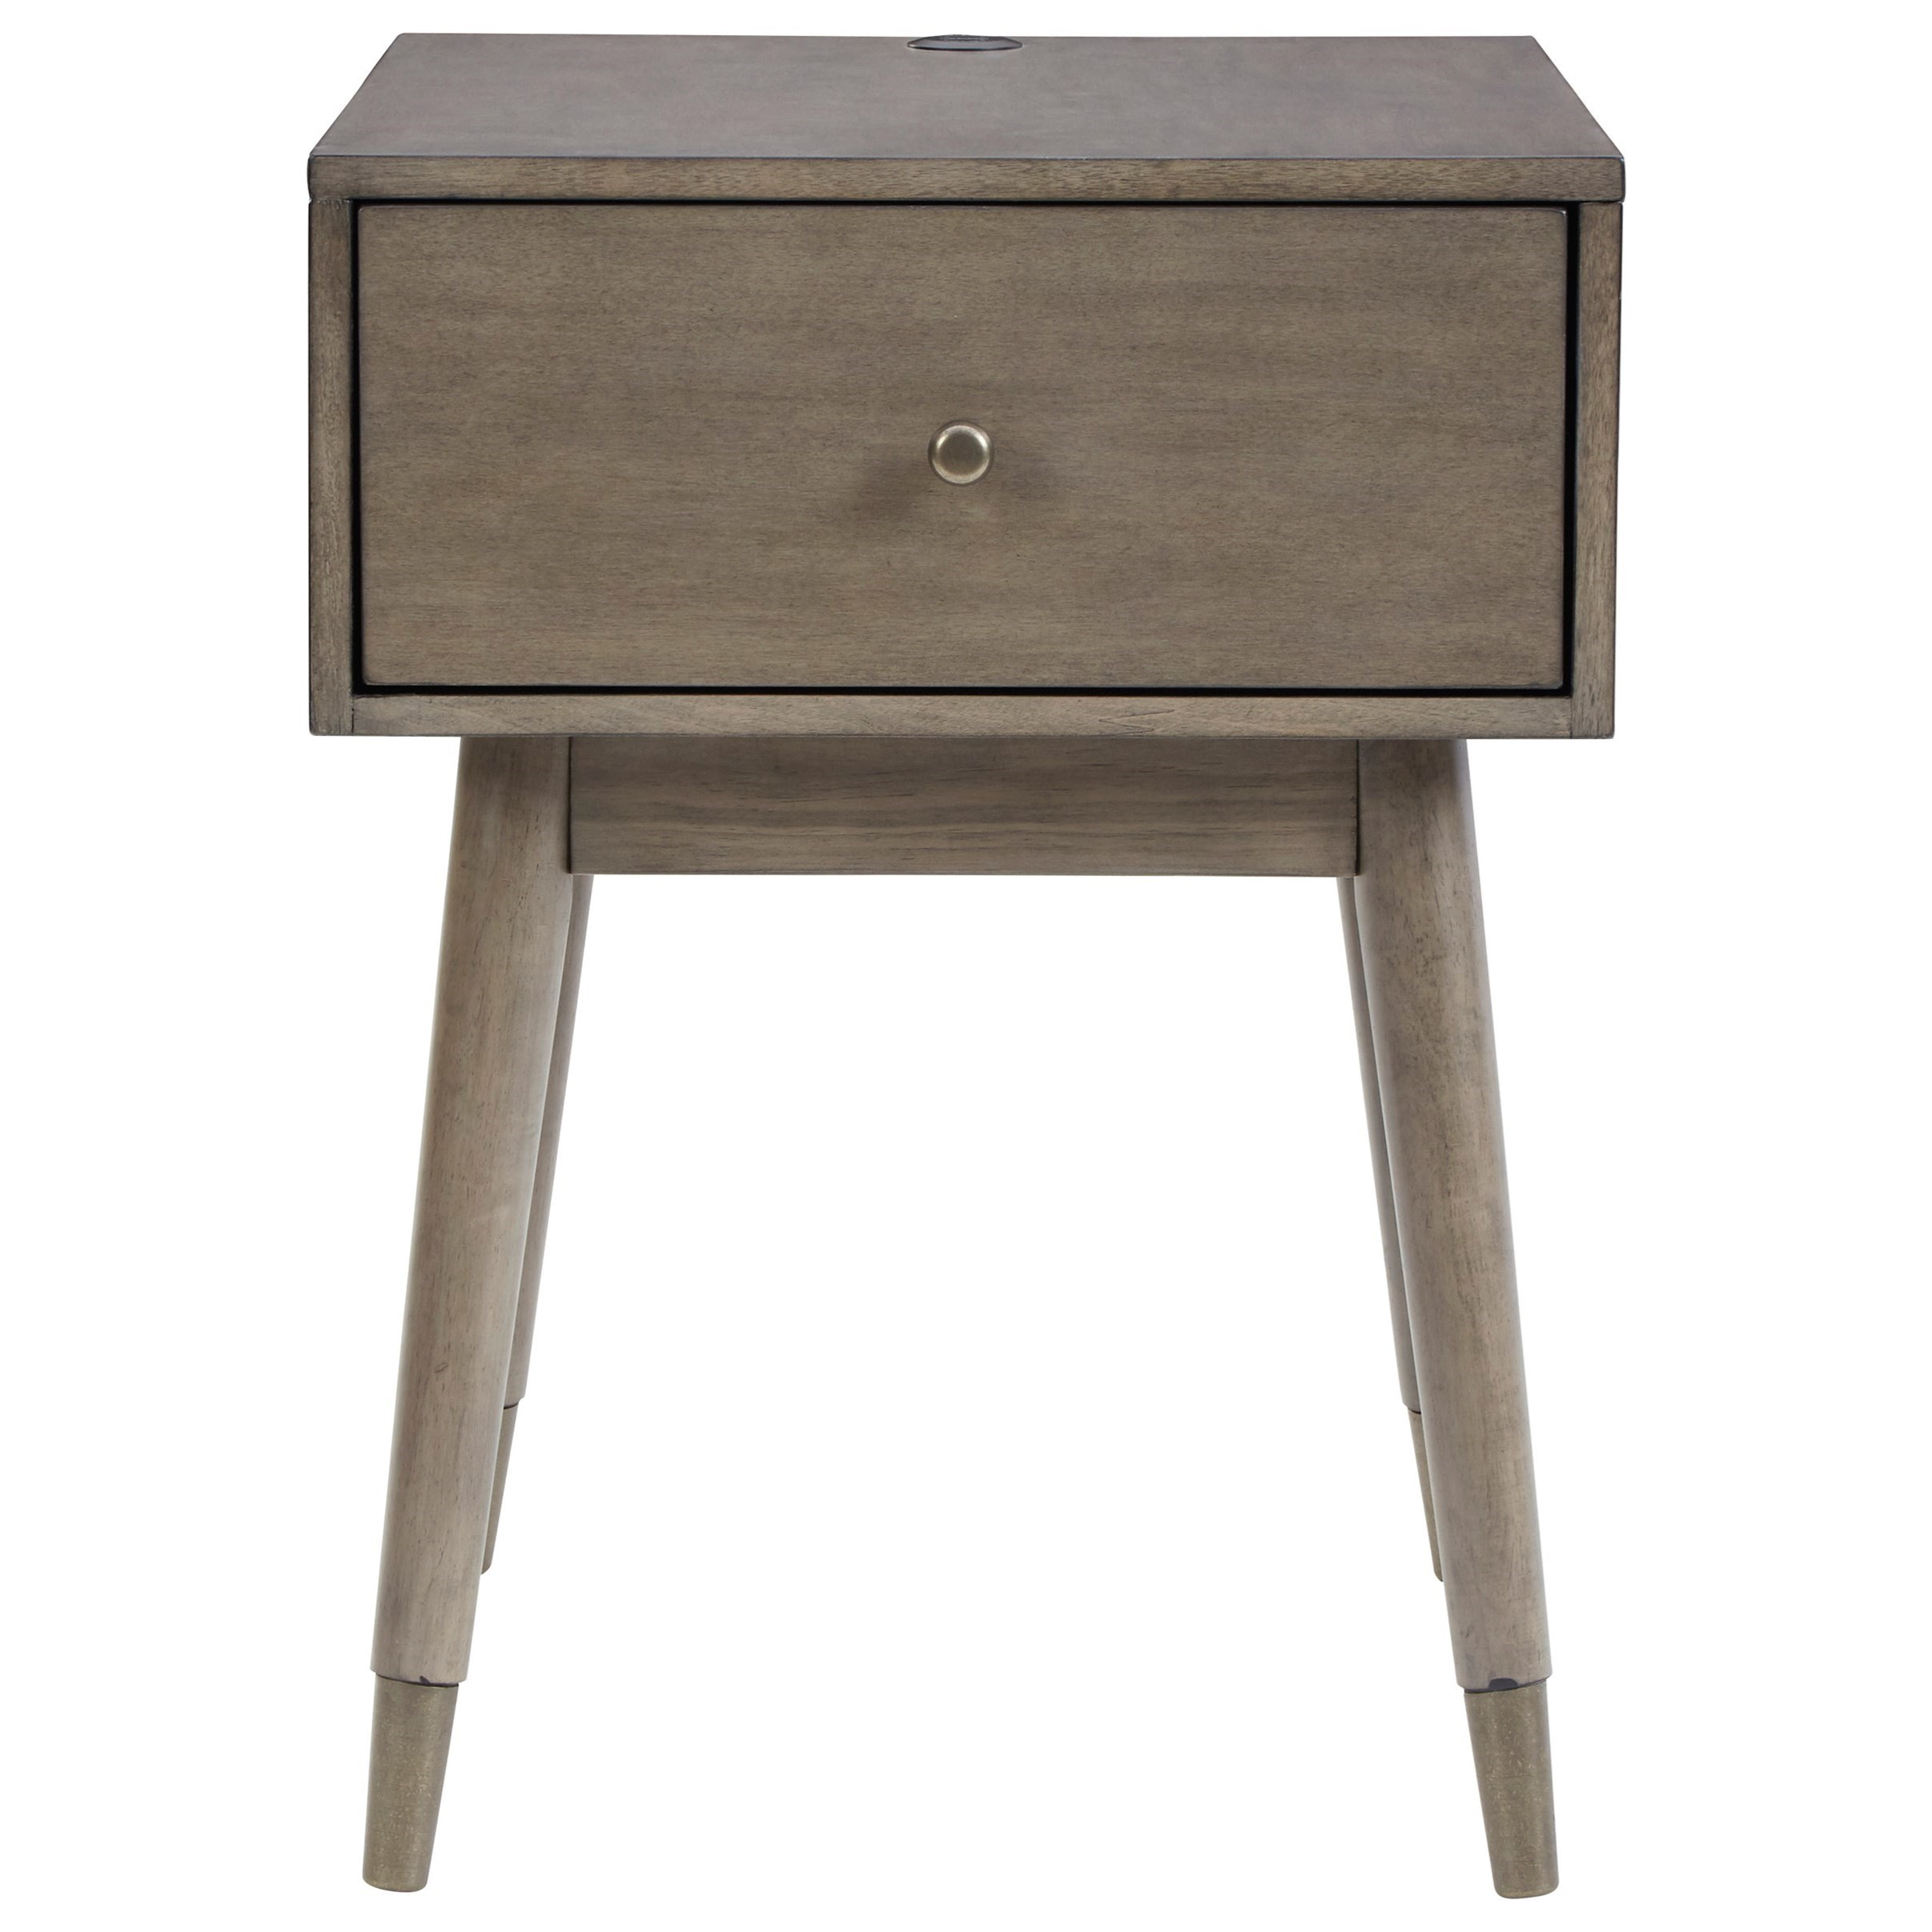 Paulrich Accent Table by Signature Design by Ashley at Northeast Factory Direct